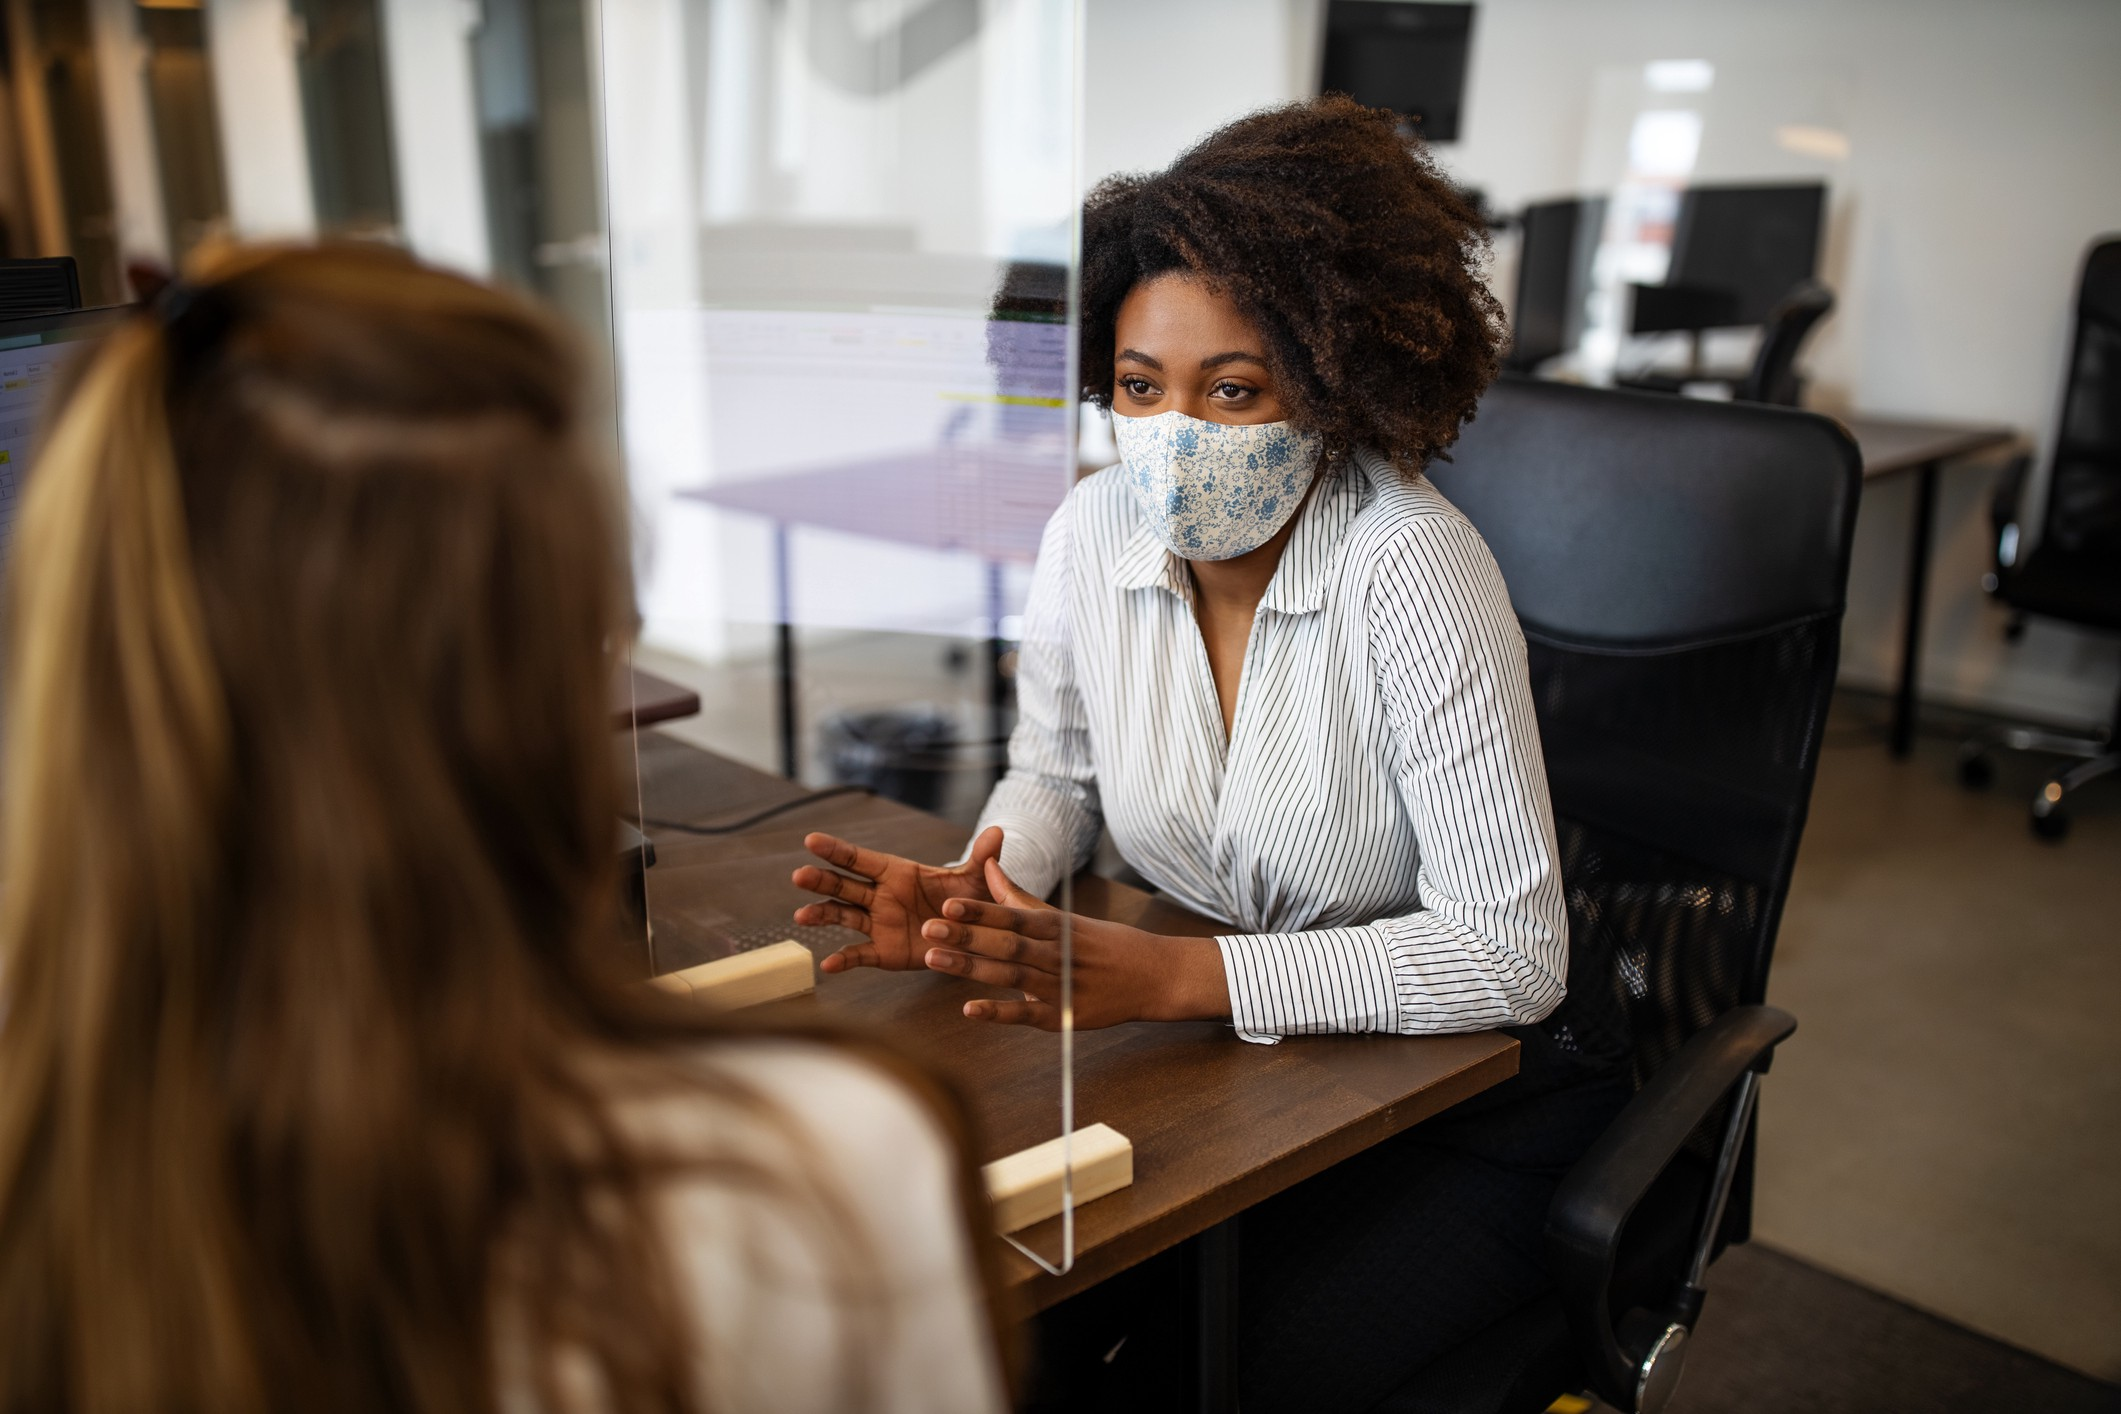 A Black businesswoman wearing a face mask negotiates with a client. There is a plastic divider for social distancing.